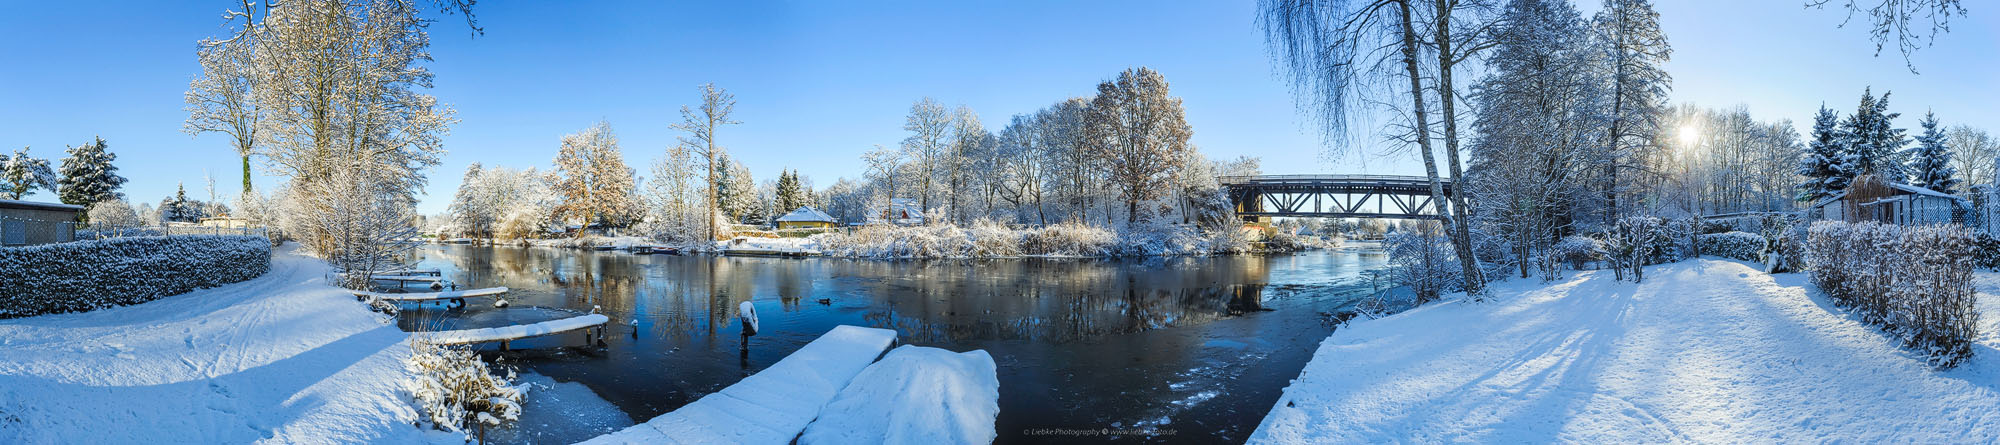 Winter-Havel-Oranienburg